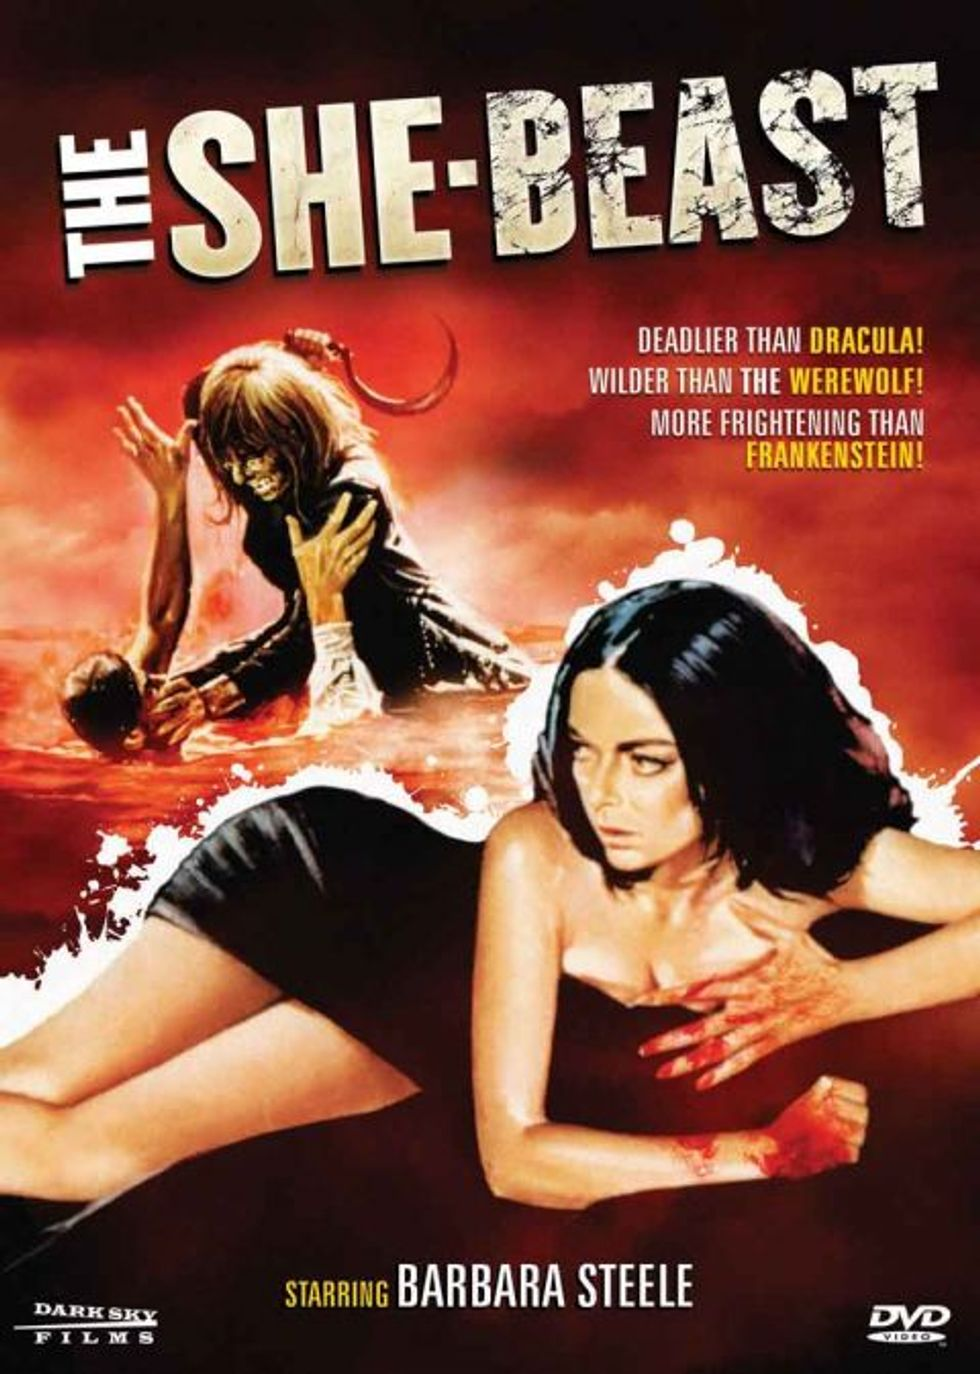 The She-Beast On DVD!